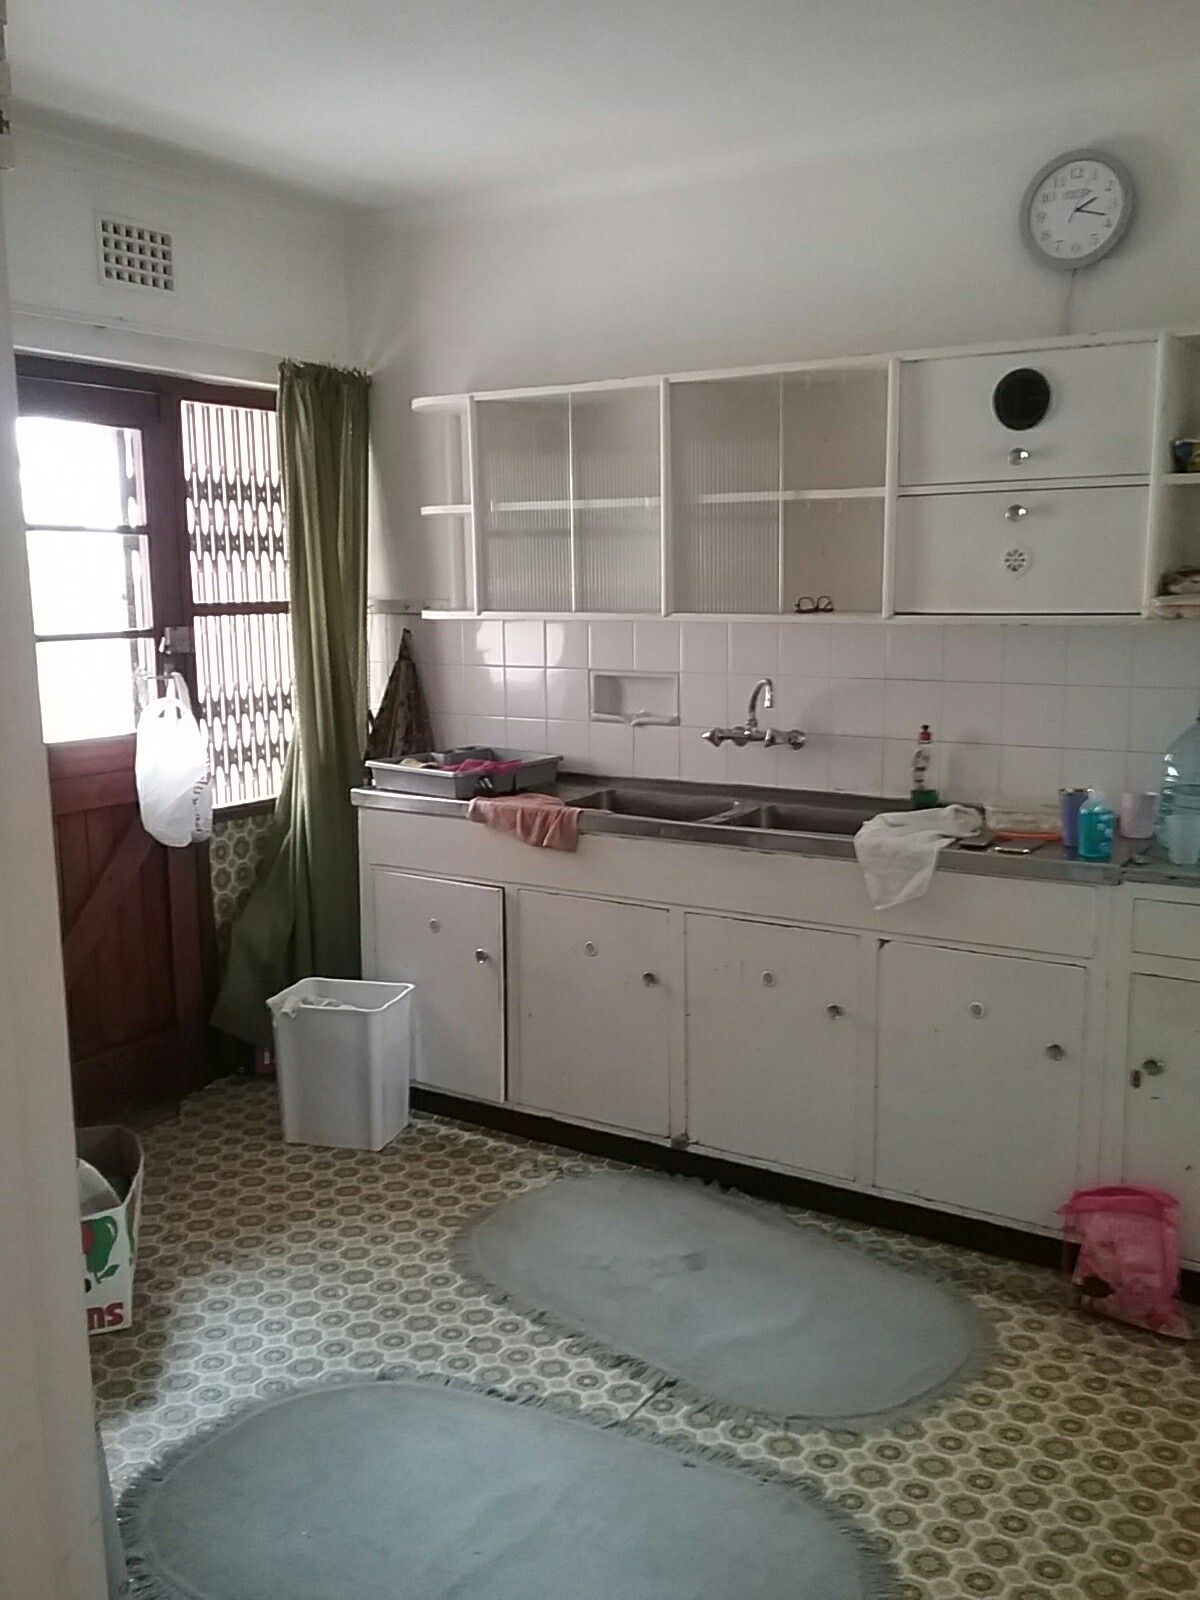 """Kitchen with very old brittle """"lino"""" flooring. With paint scrappers we managed to lift this all off (20sqm) in about 2 hrs"""